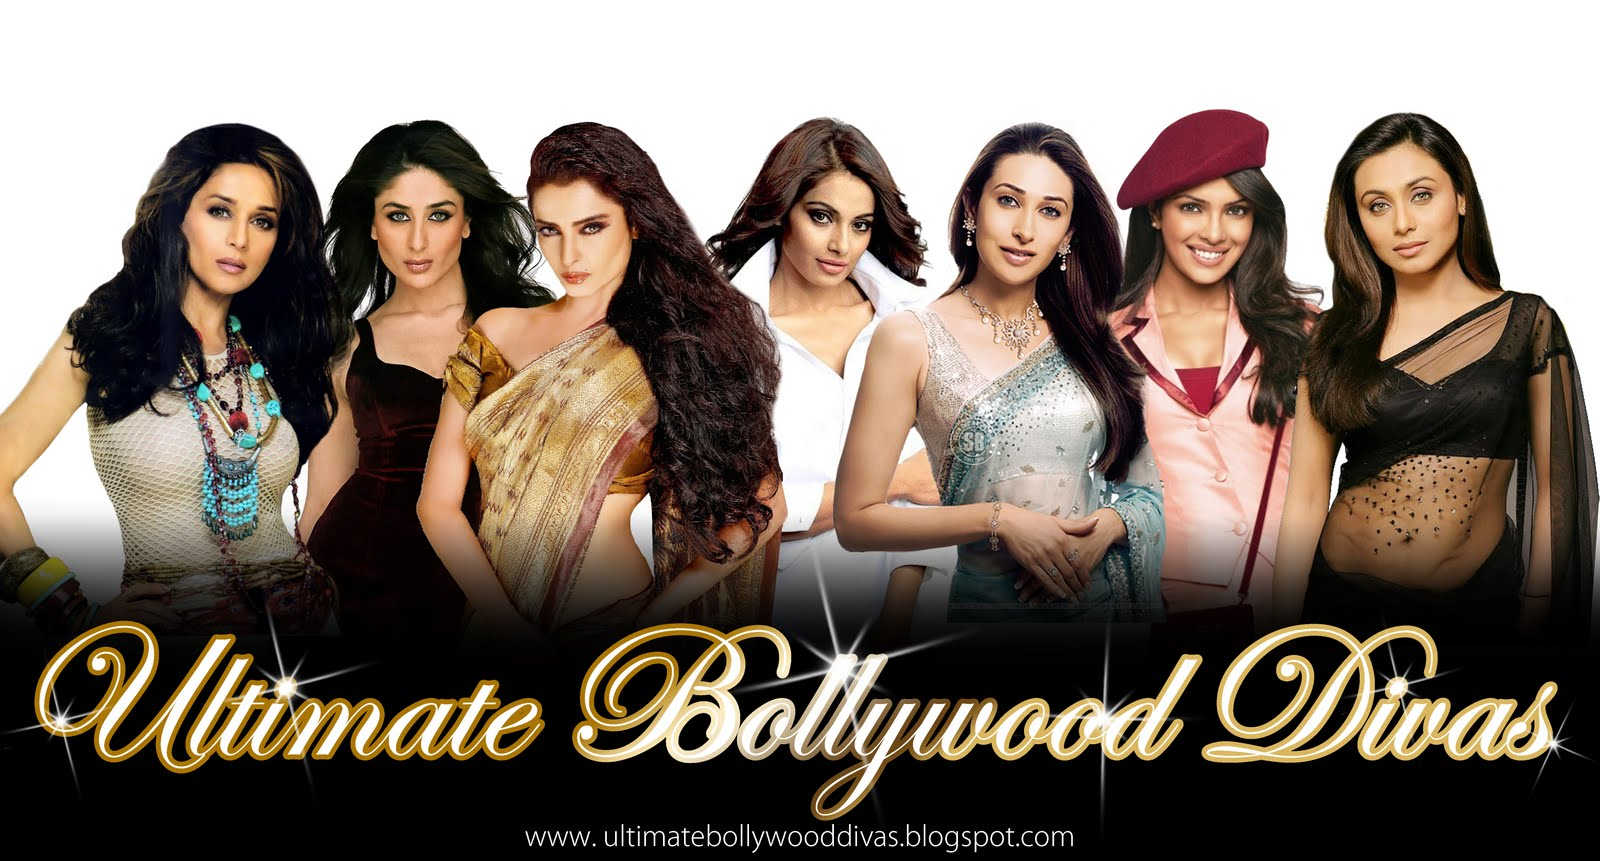 Ultimate Bollywood Divas